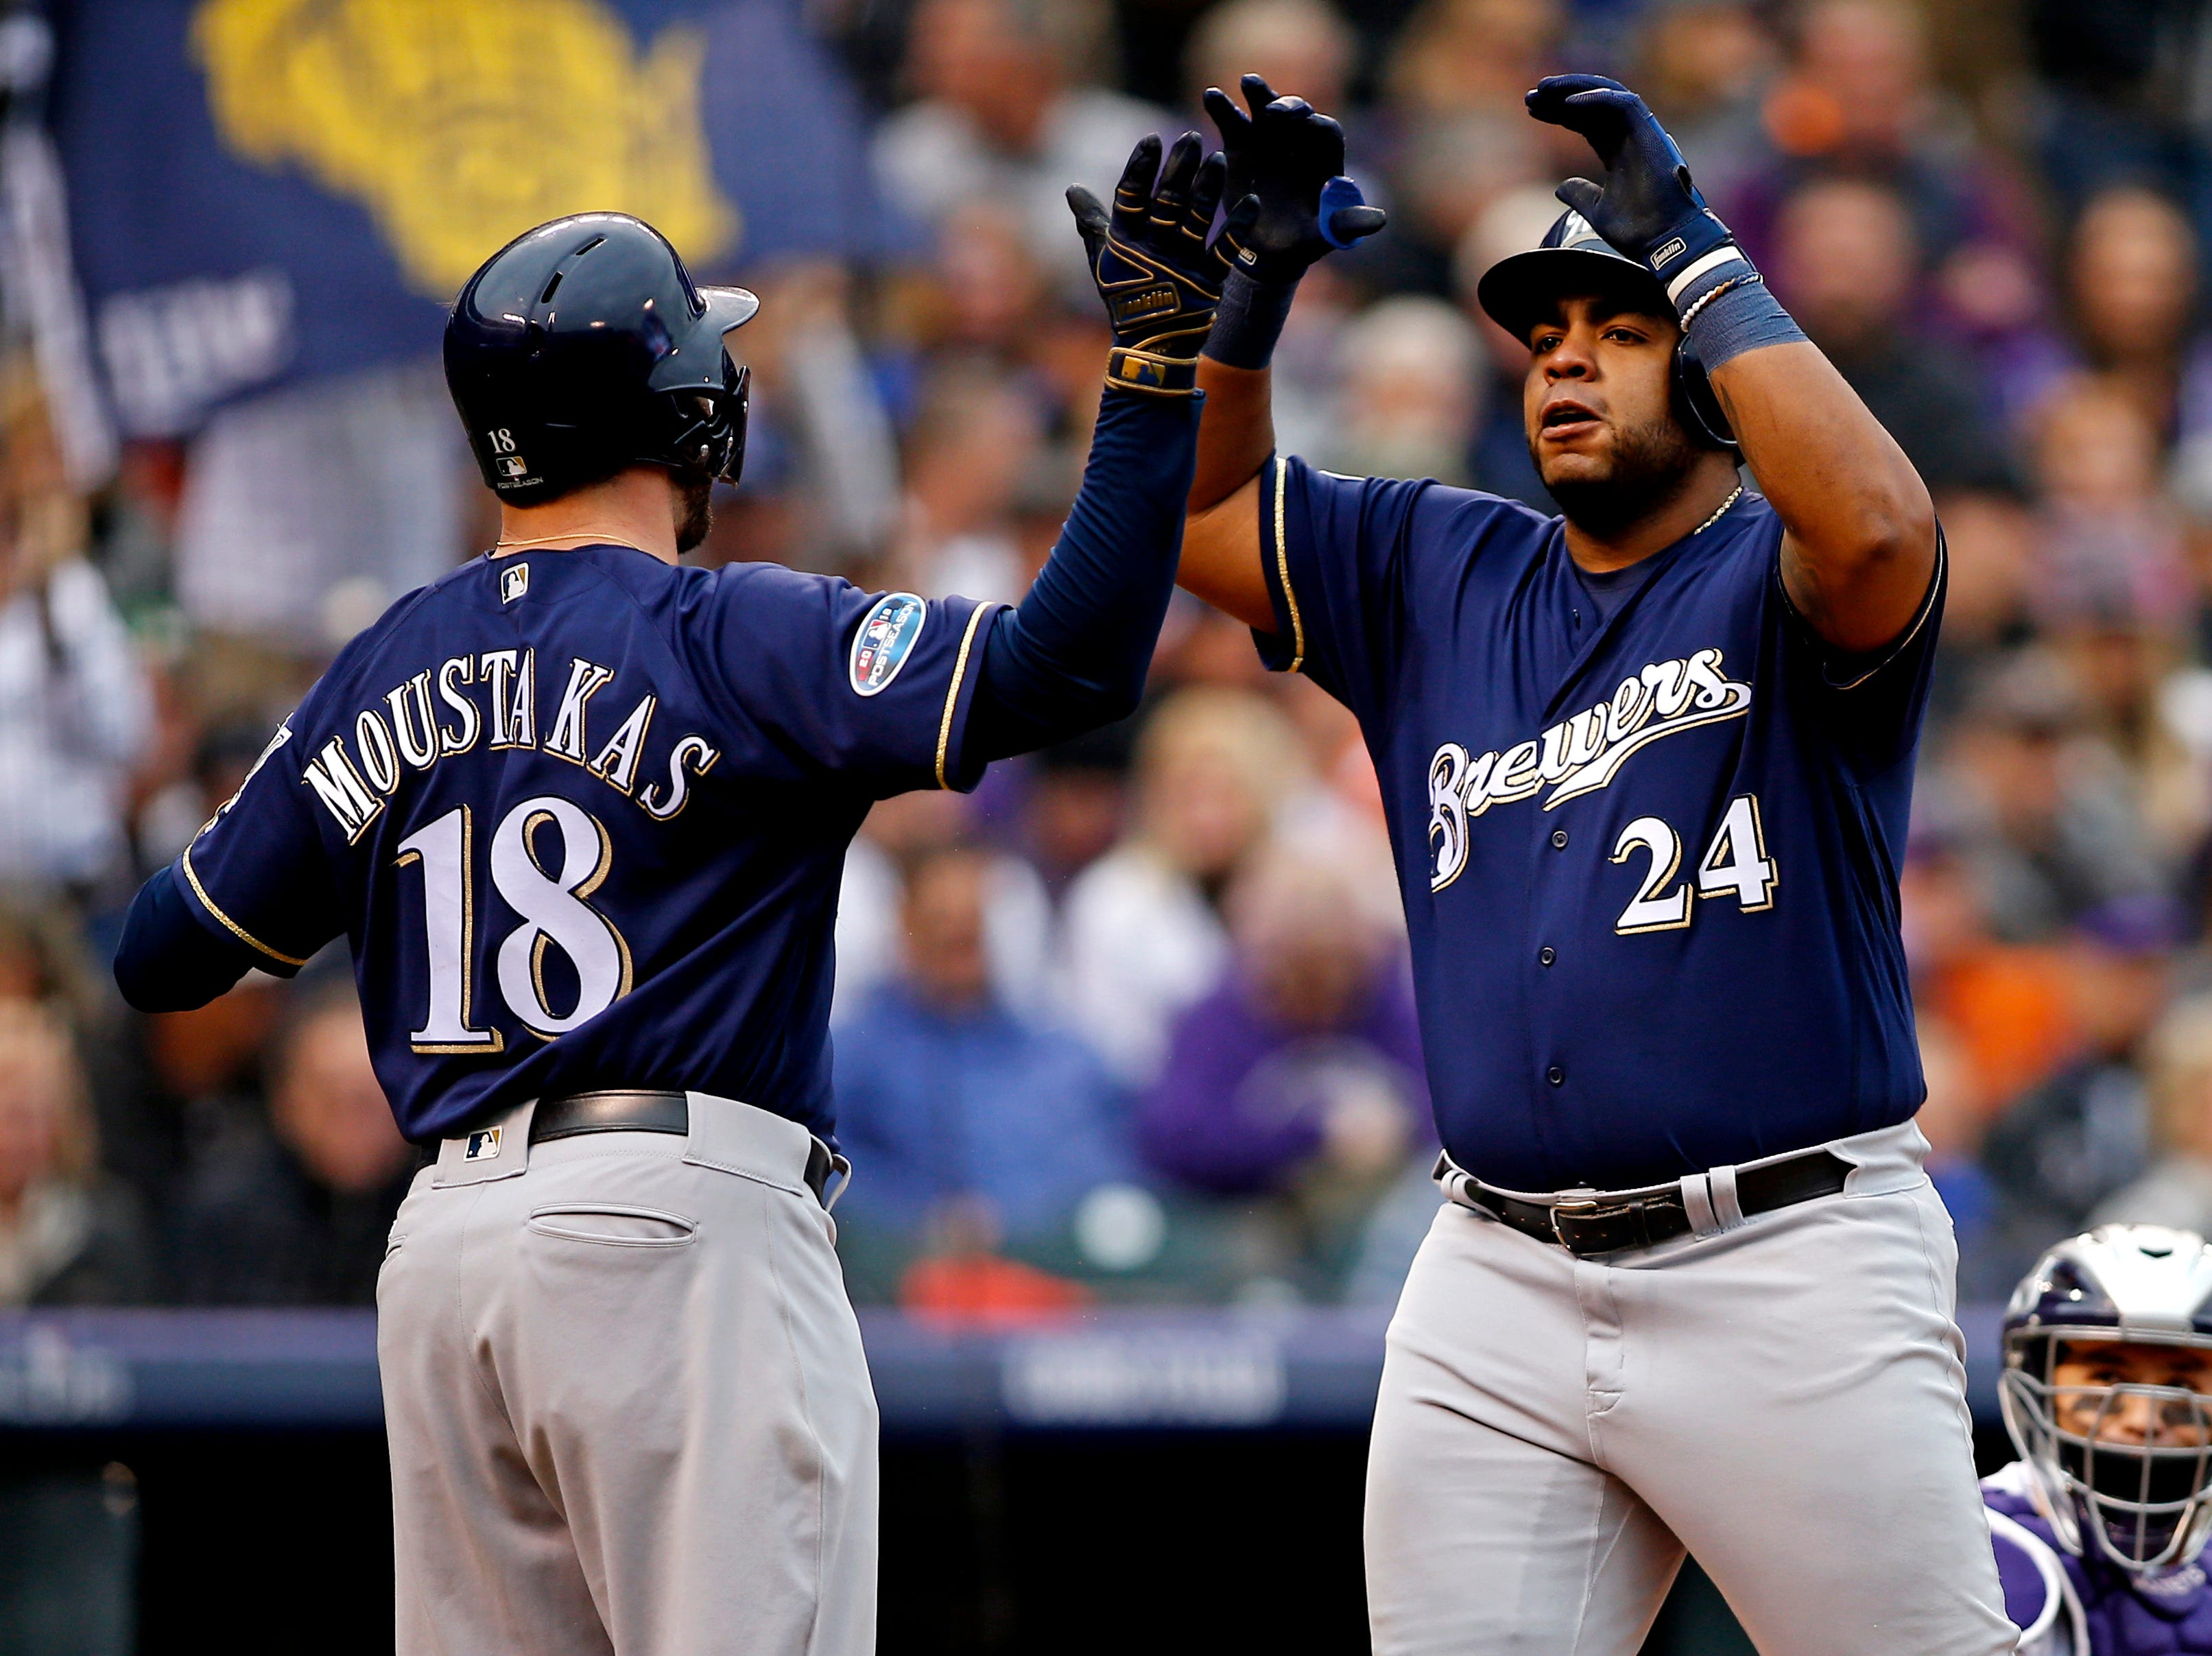 NLDS Game 3: Brewers first baseman Jesus Aguilar celebrates his home run in the fourth inning.